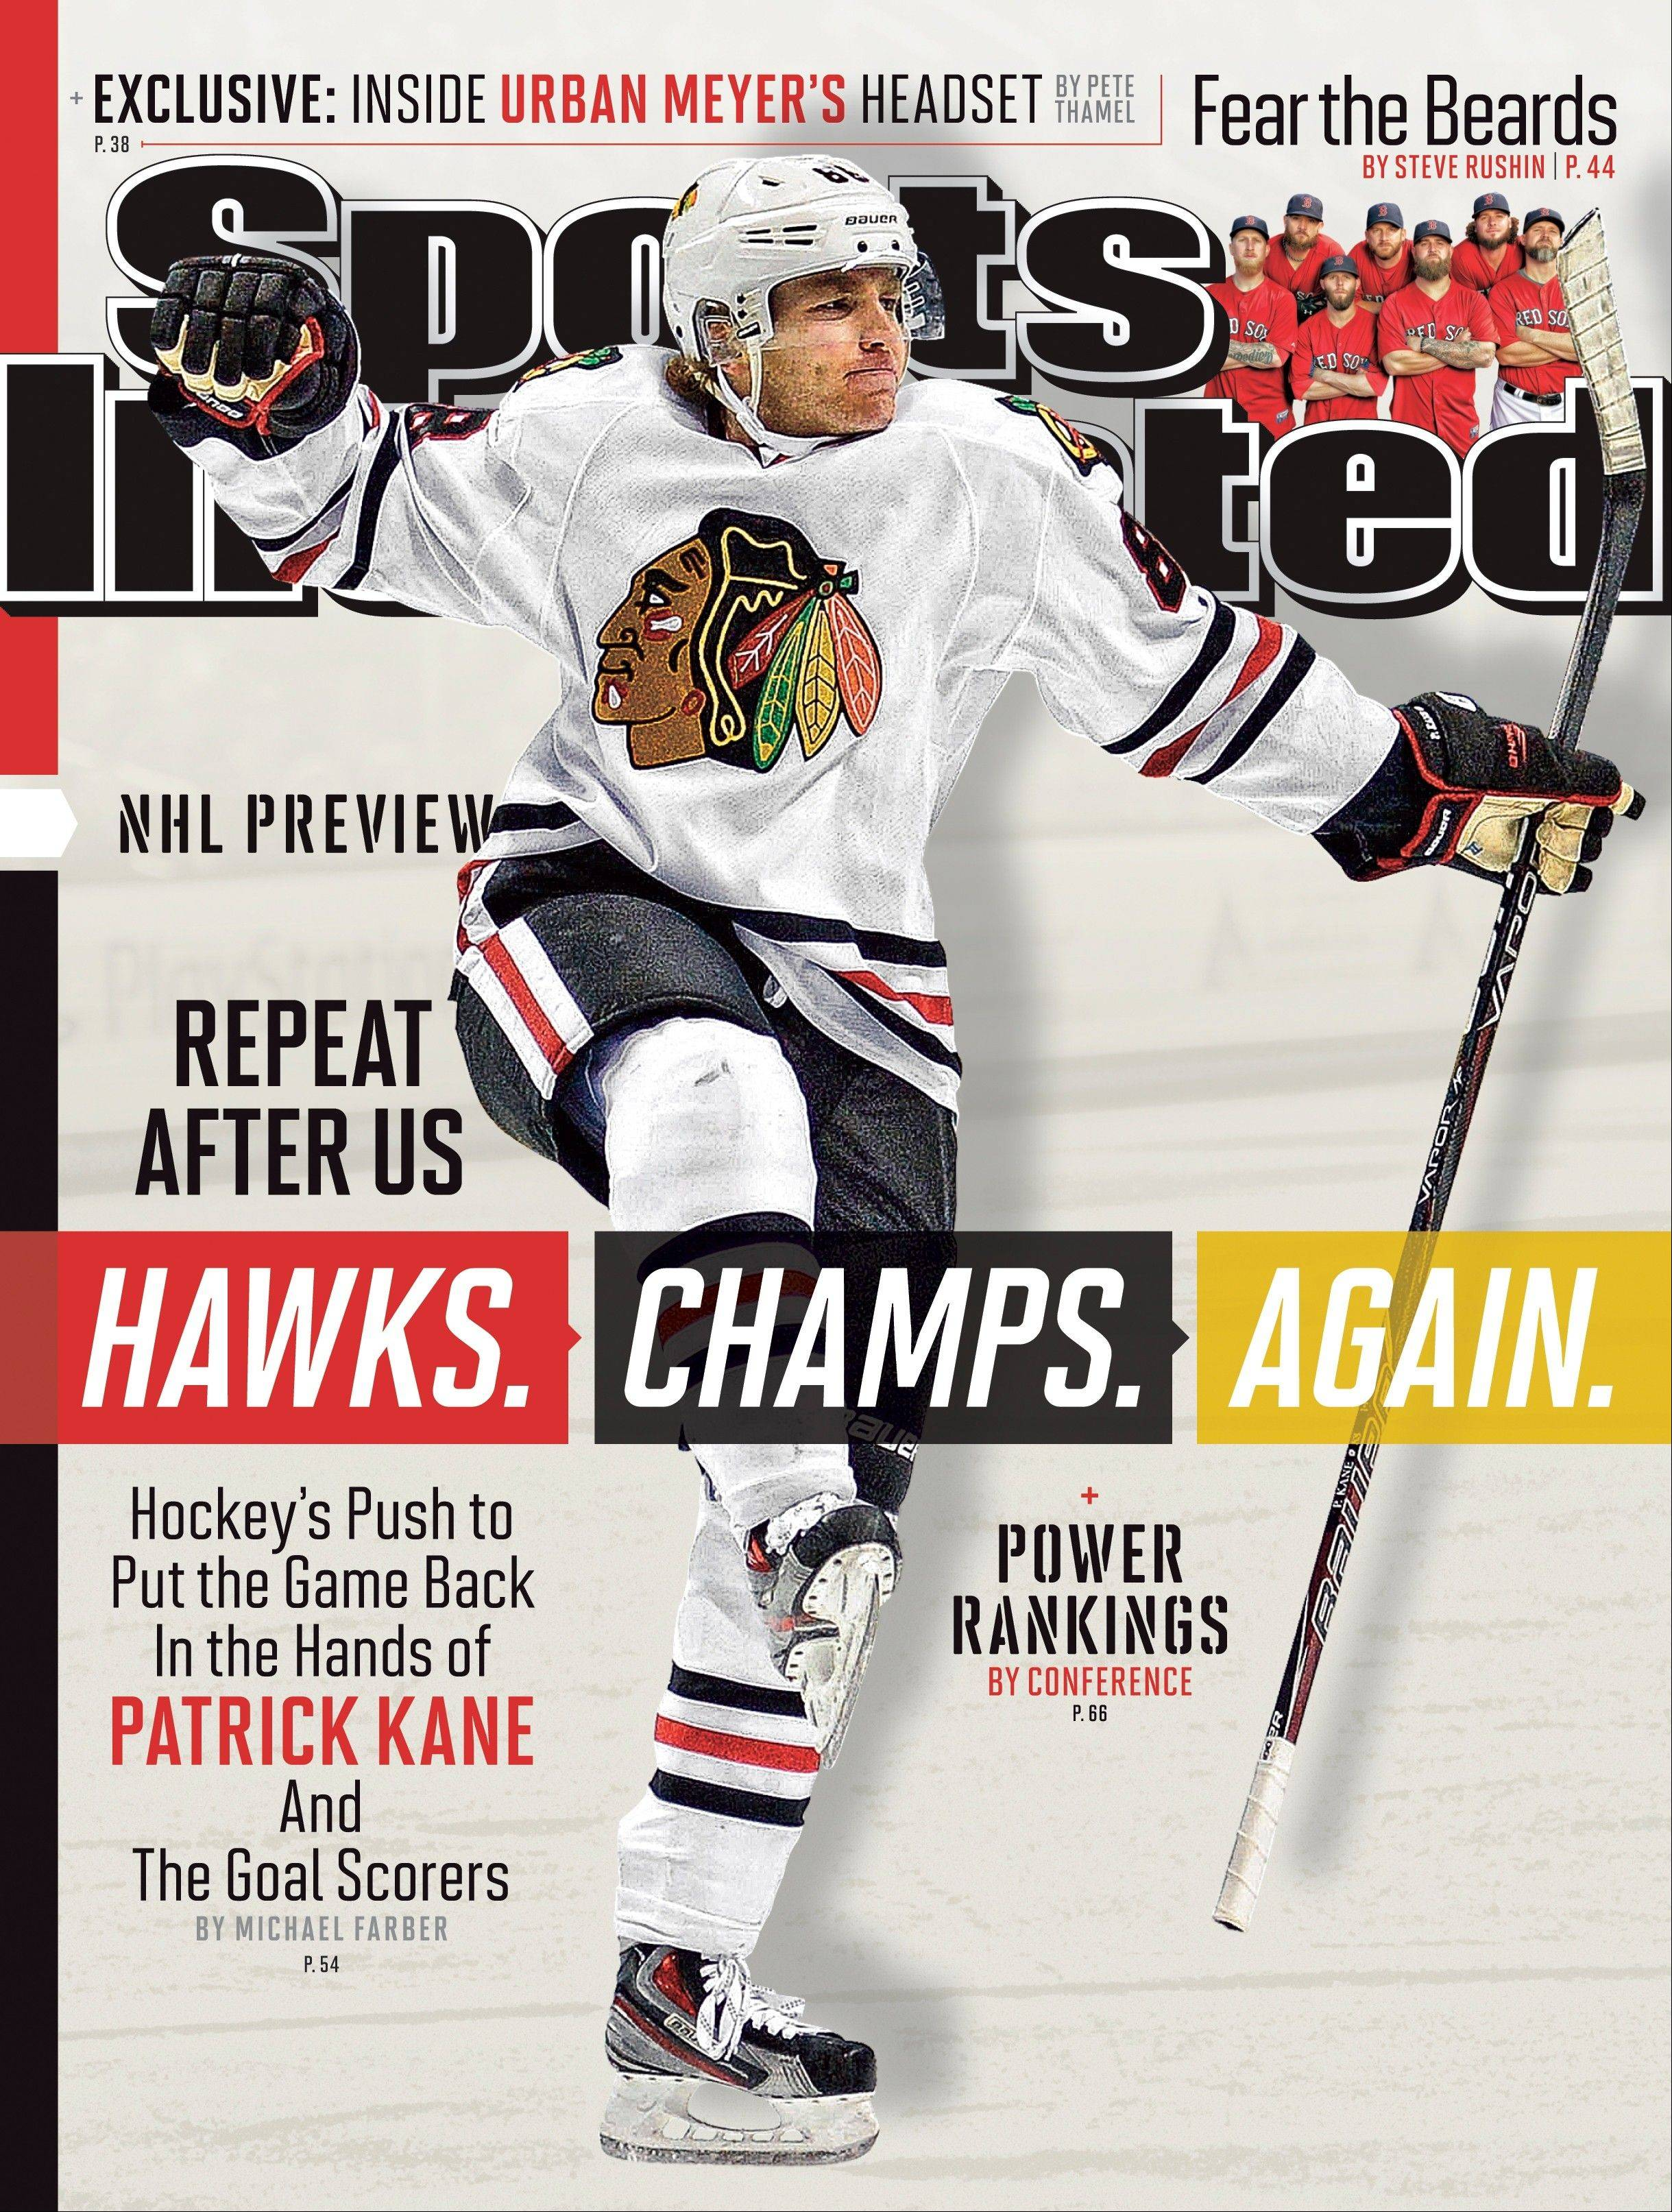 The national cover of Sports Illustrated, featuring Patrick Kane of Chicago Blackhawks, marking the fourth cover the Blackhawks have been featured on in just more than six months and the second national one.